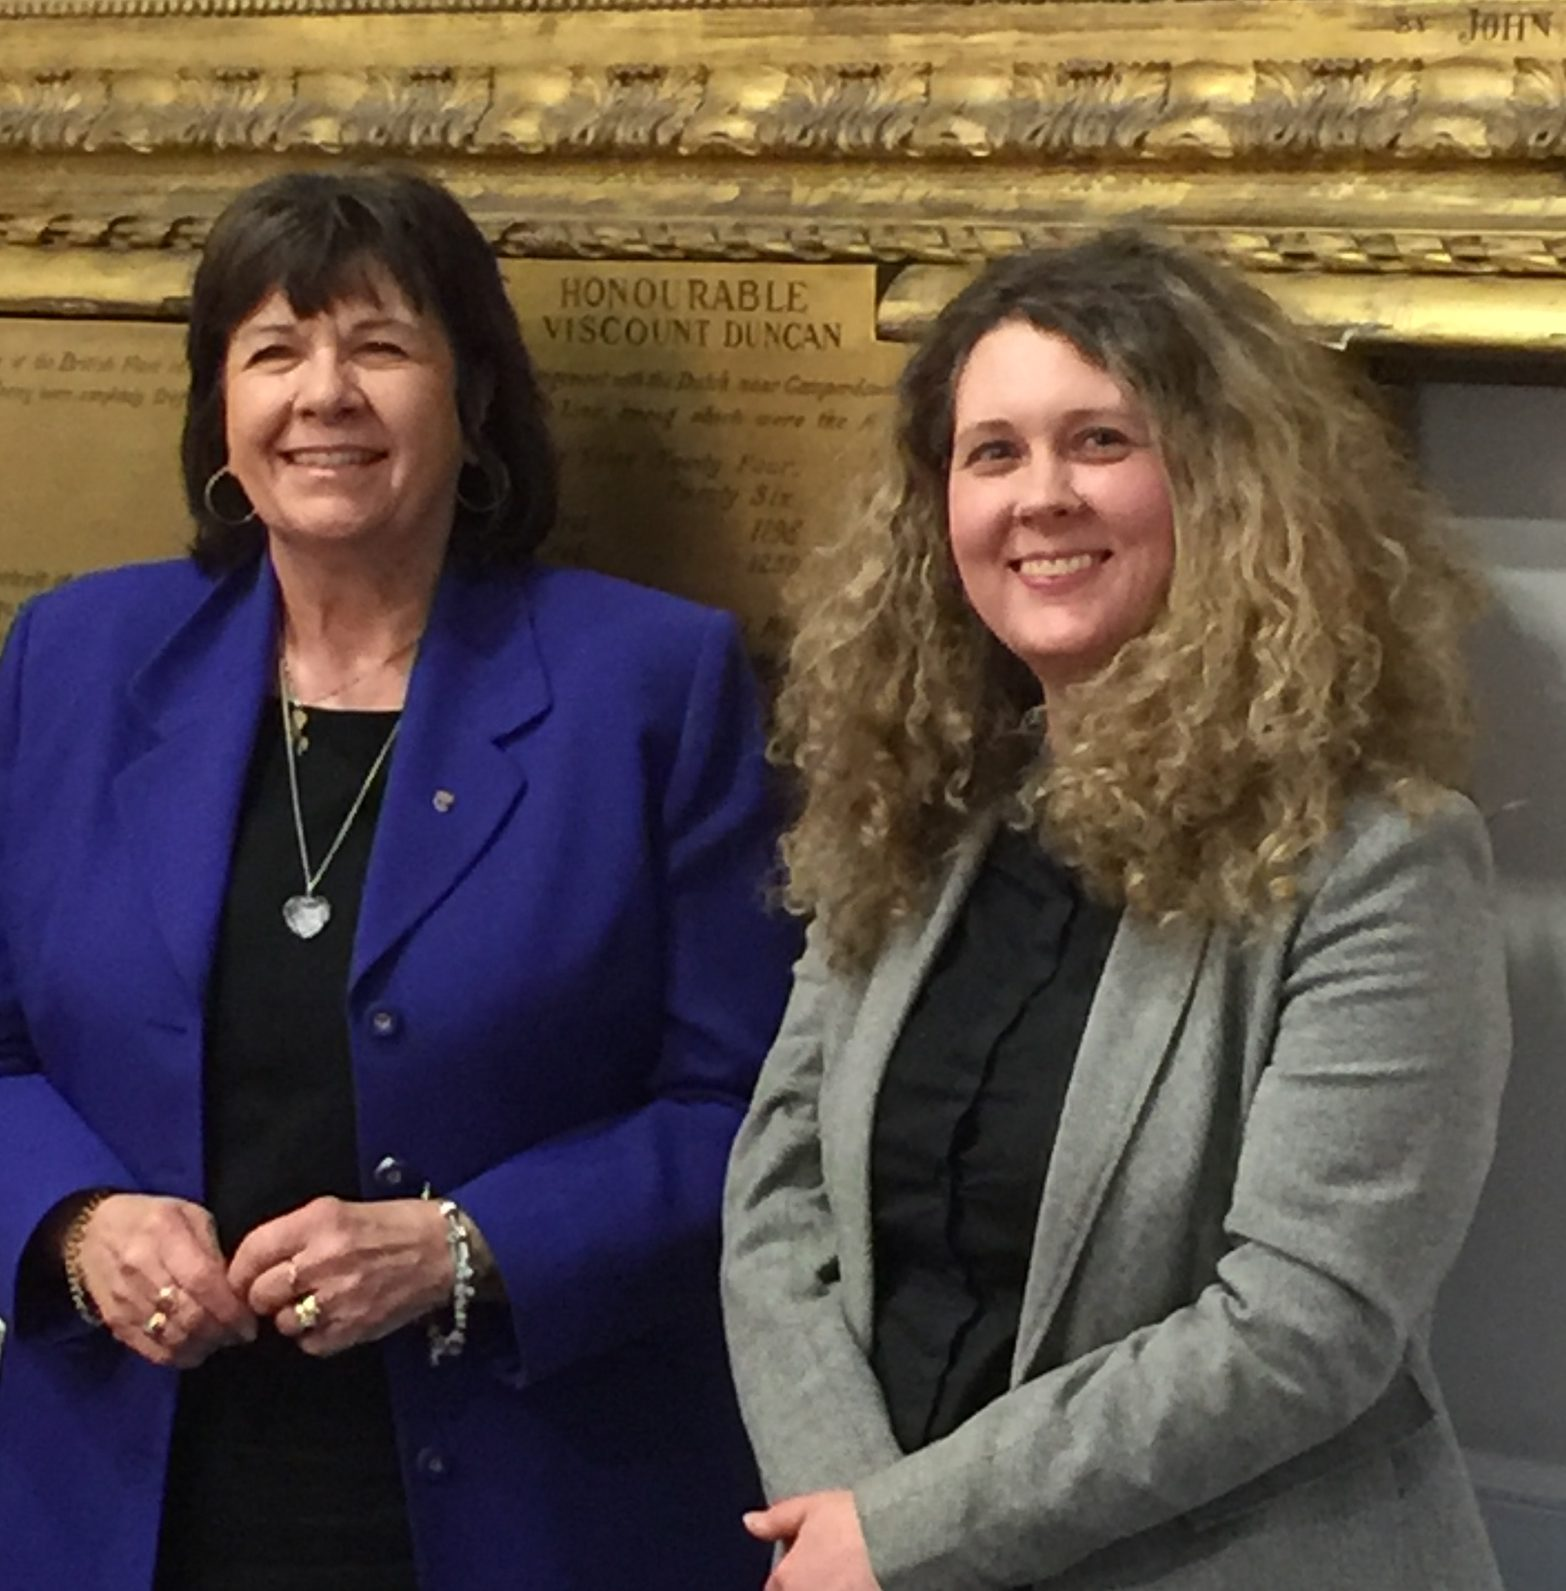 Amanda Kopel and Councillor Lois Speed